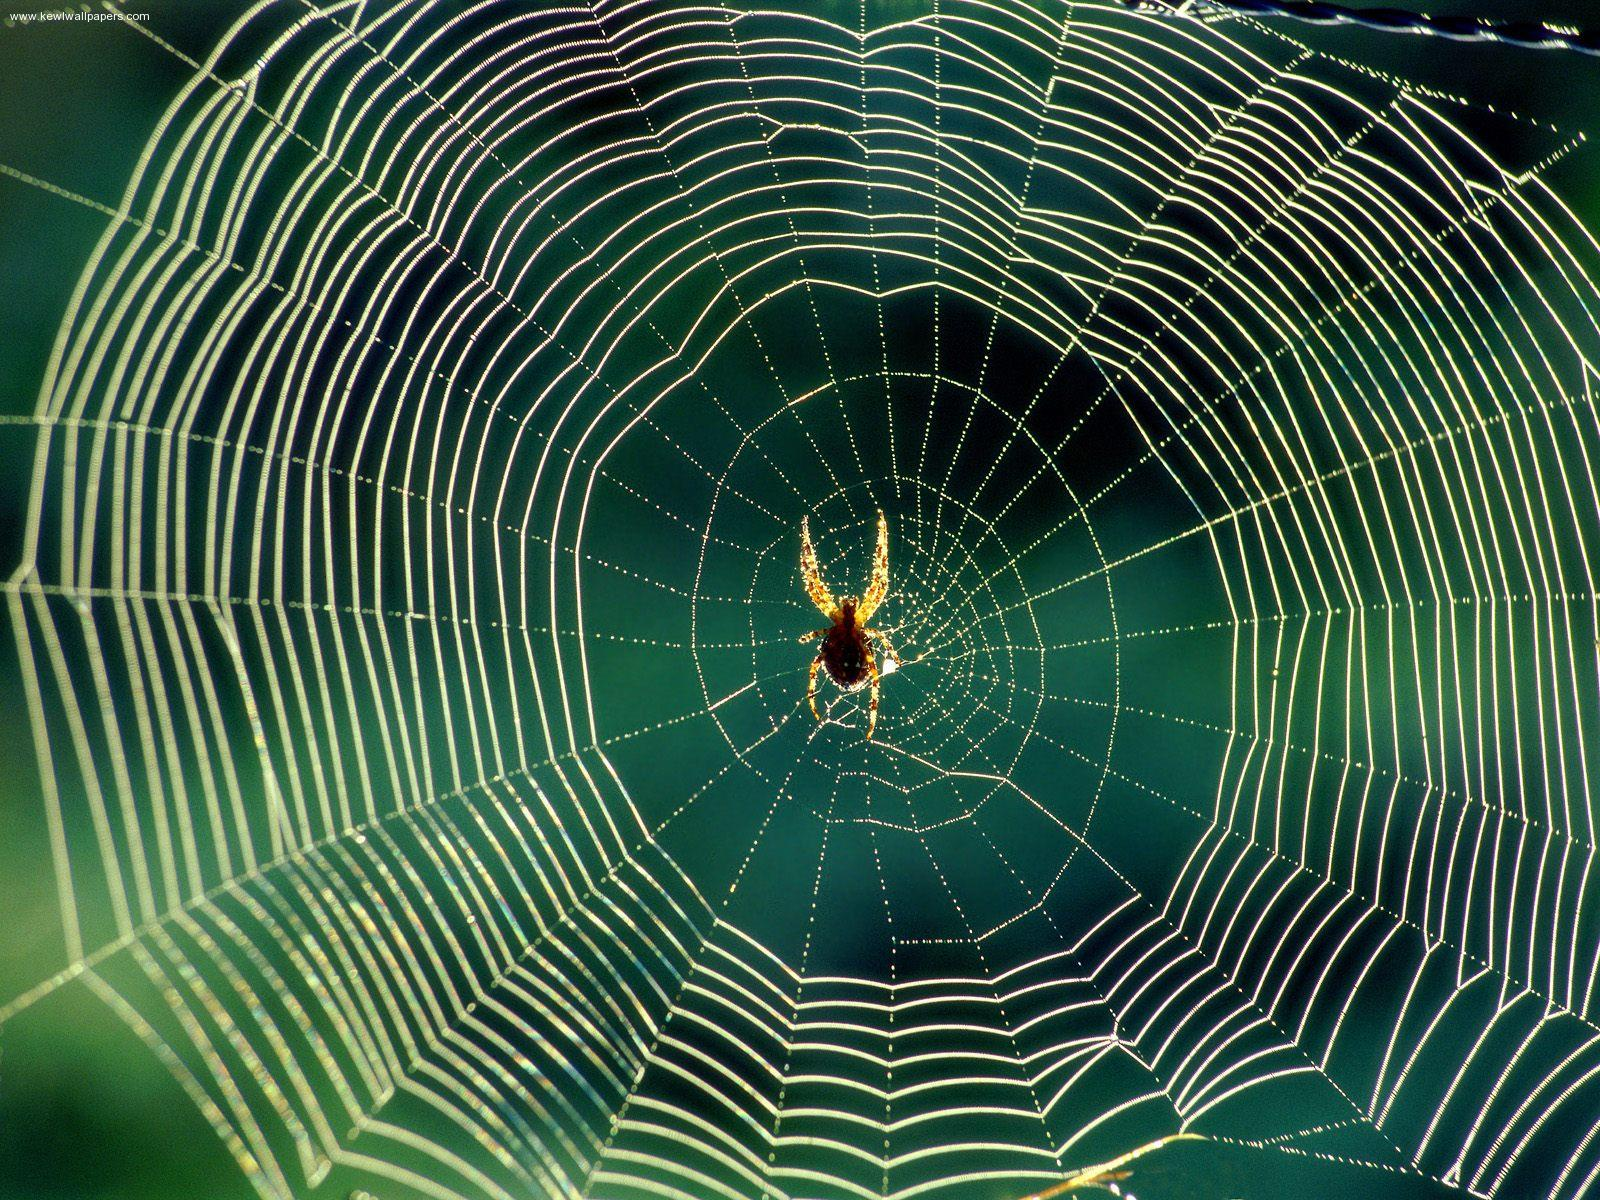 101 Proofs For God: #91 Spider Webs